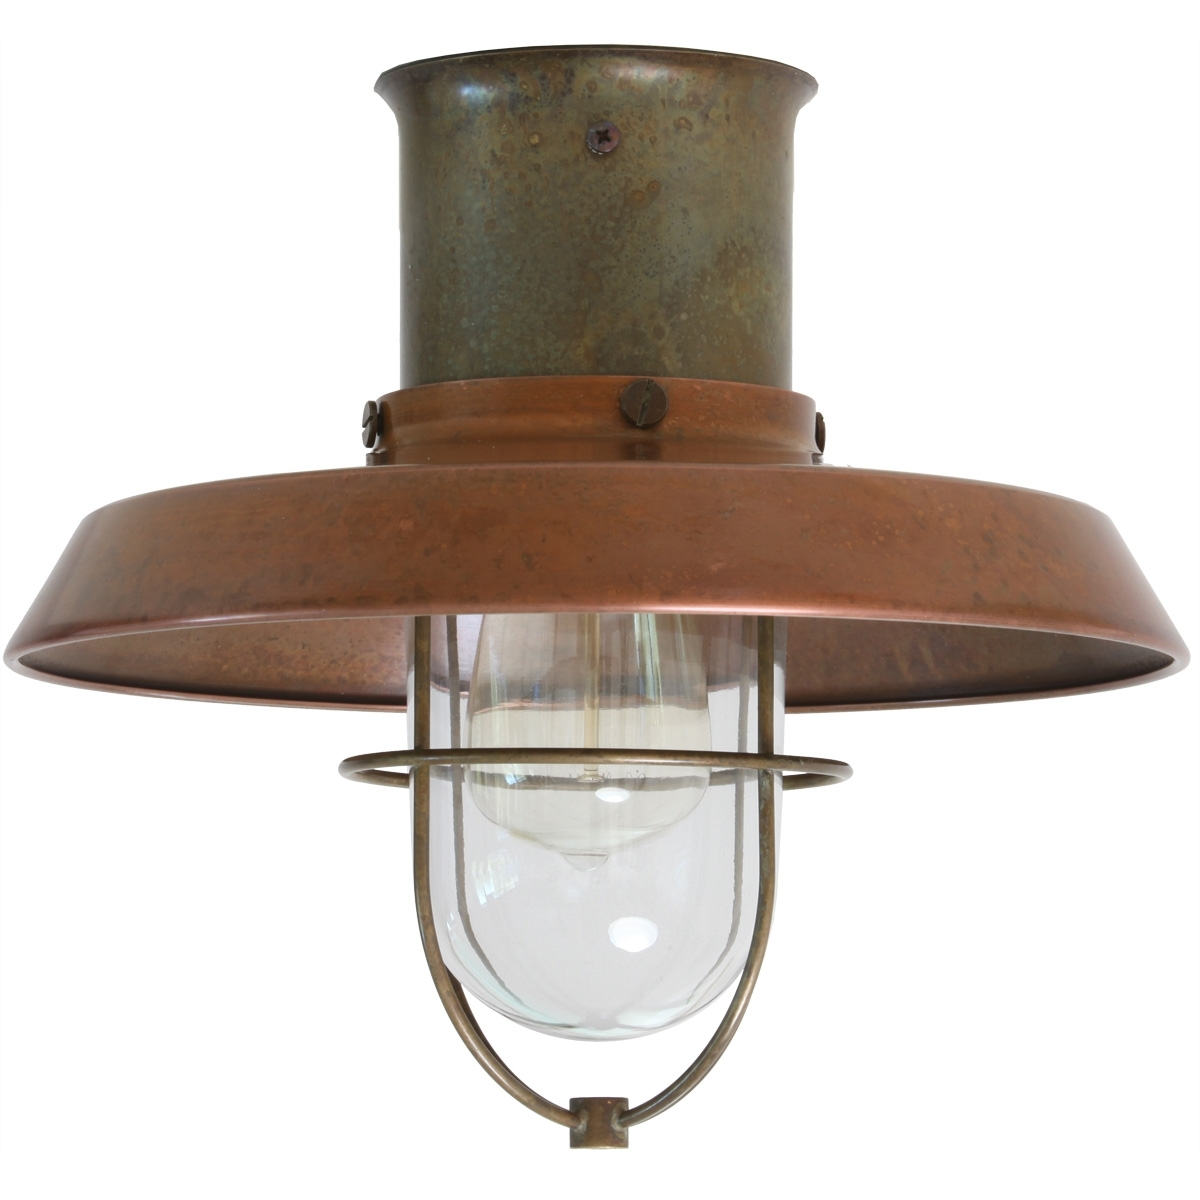 Most Current Outdoor Ceiling Lights For Patio With Regard To Maritime Outdoor Ceiling Light Il Patio 225. (View 9 of 20)